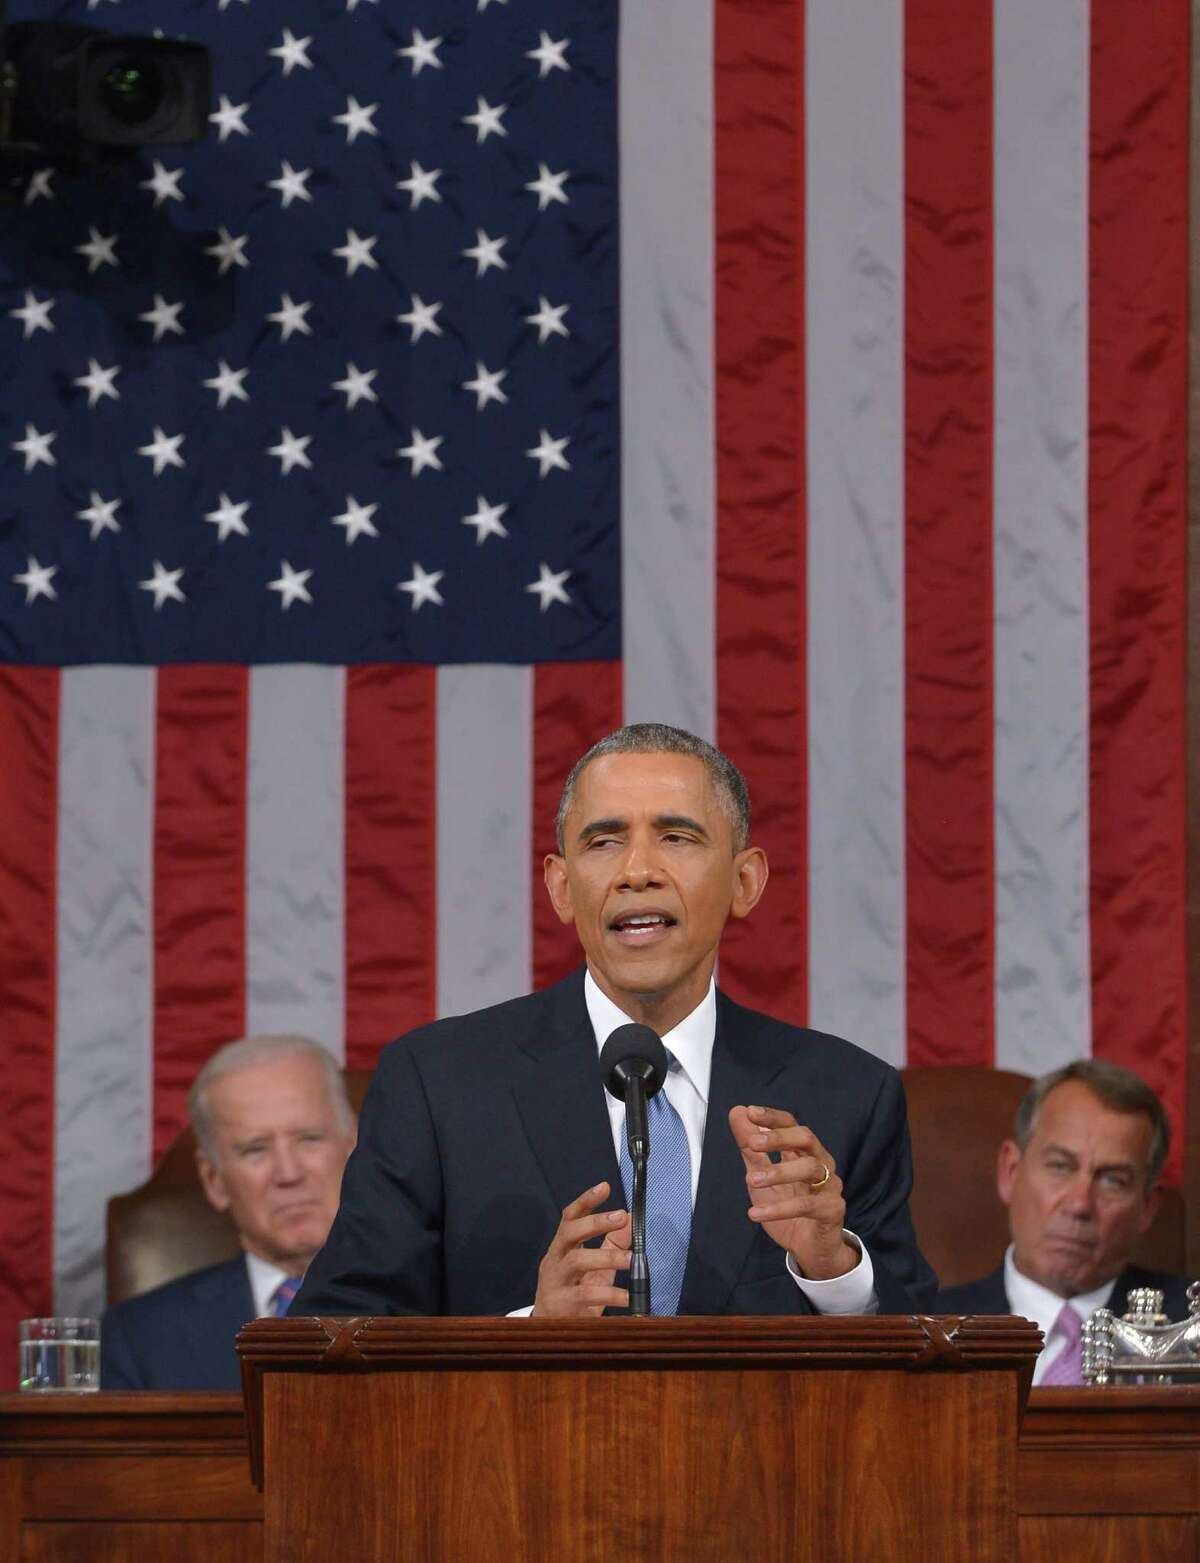 President Barack Obama delivers his State of The Union address, Tuesday, Jan. 20, 2015, on Capitol Hill in Washington. (AP Photo/Mandel Ngan, Pool)